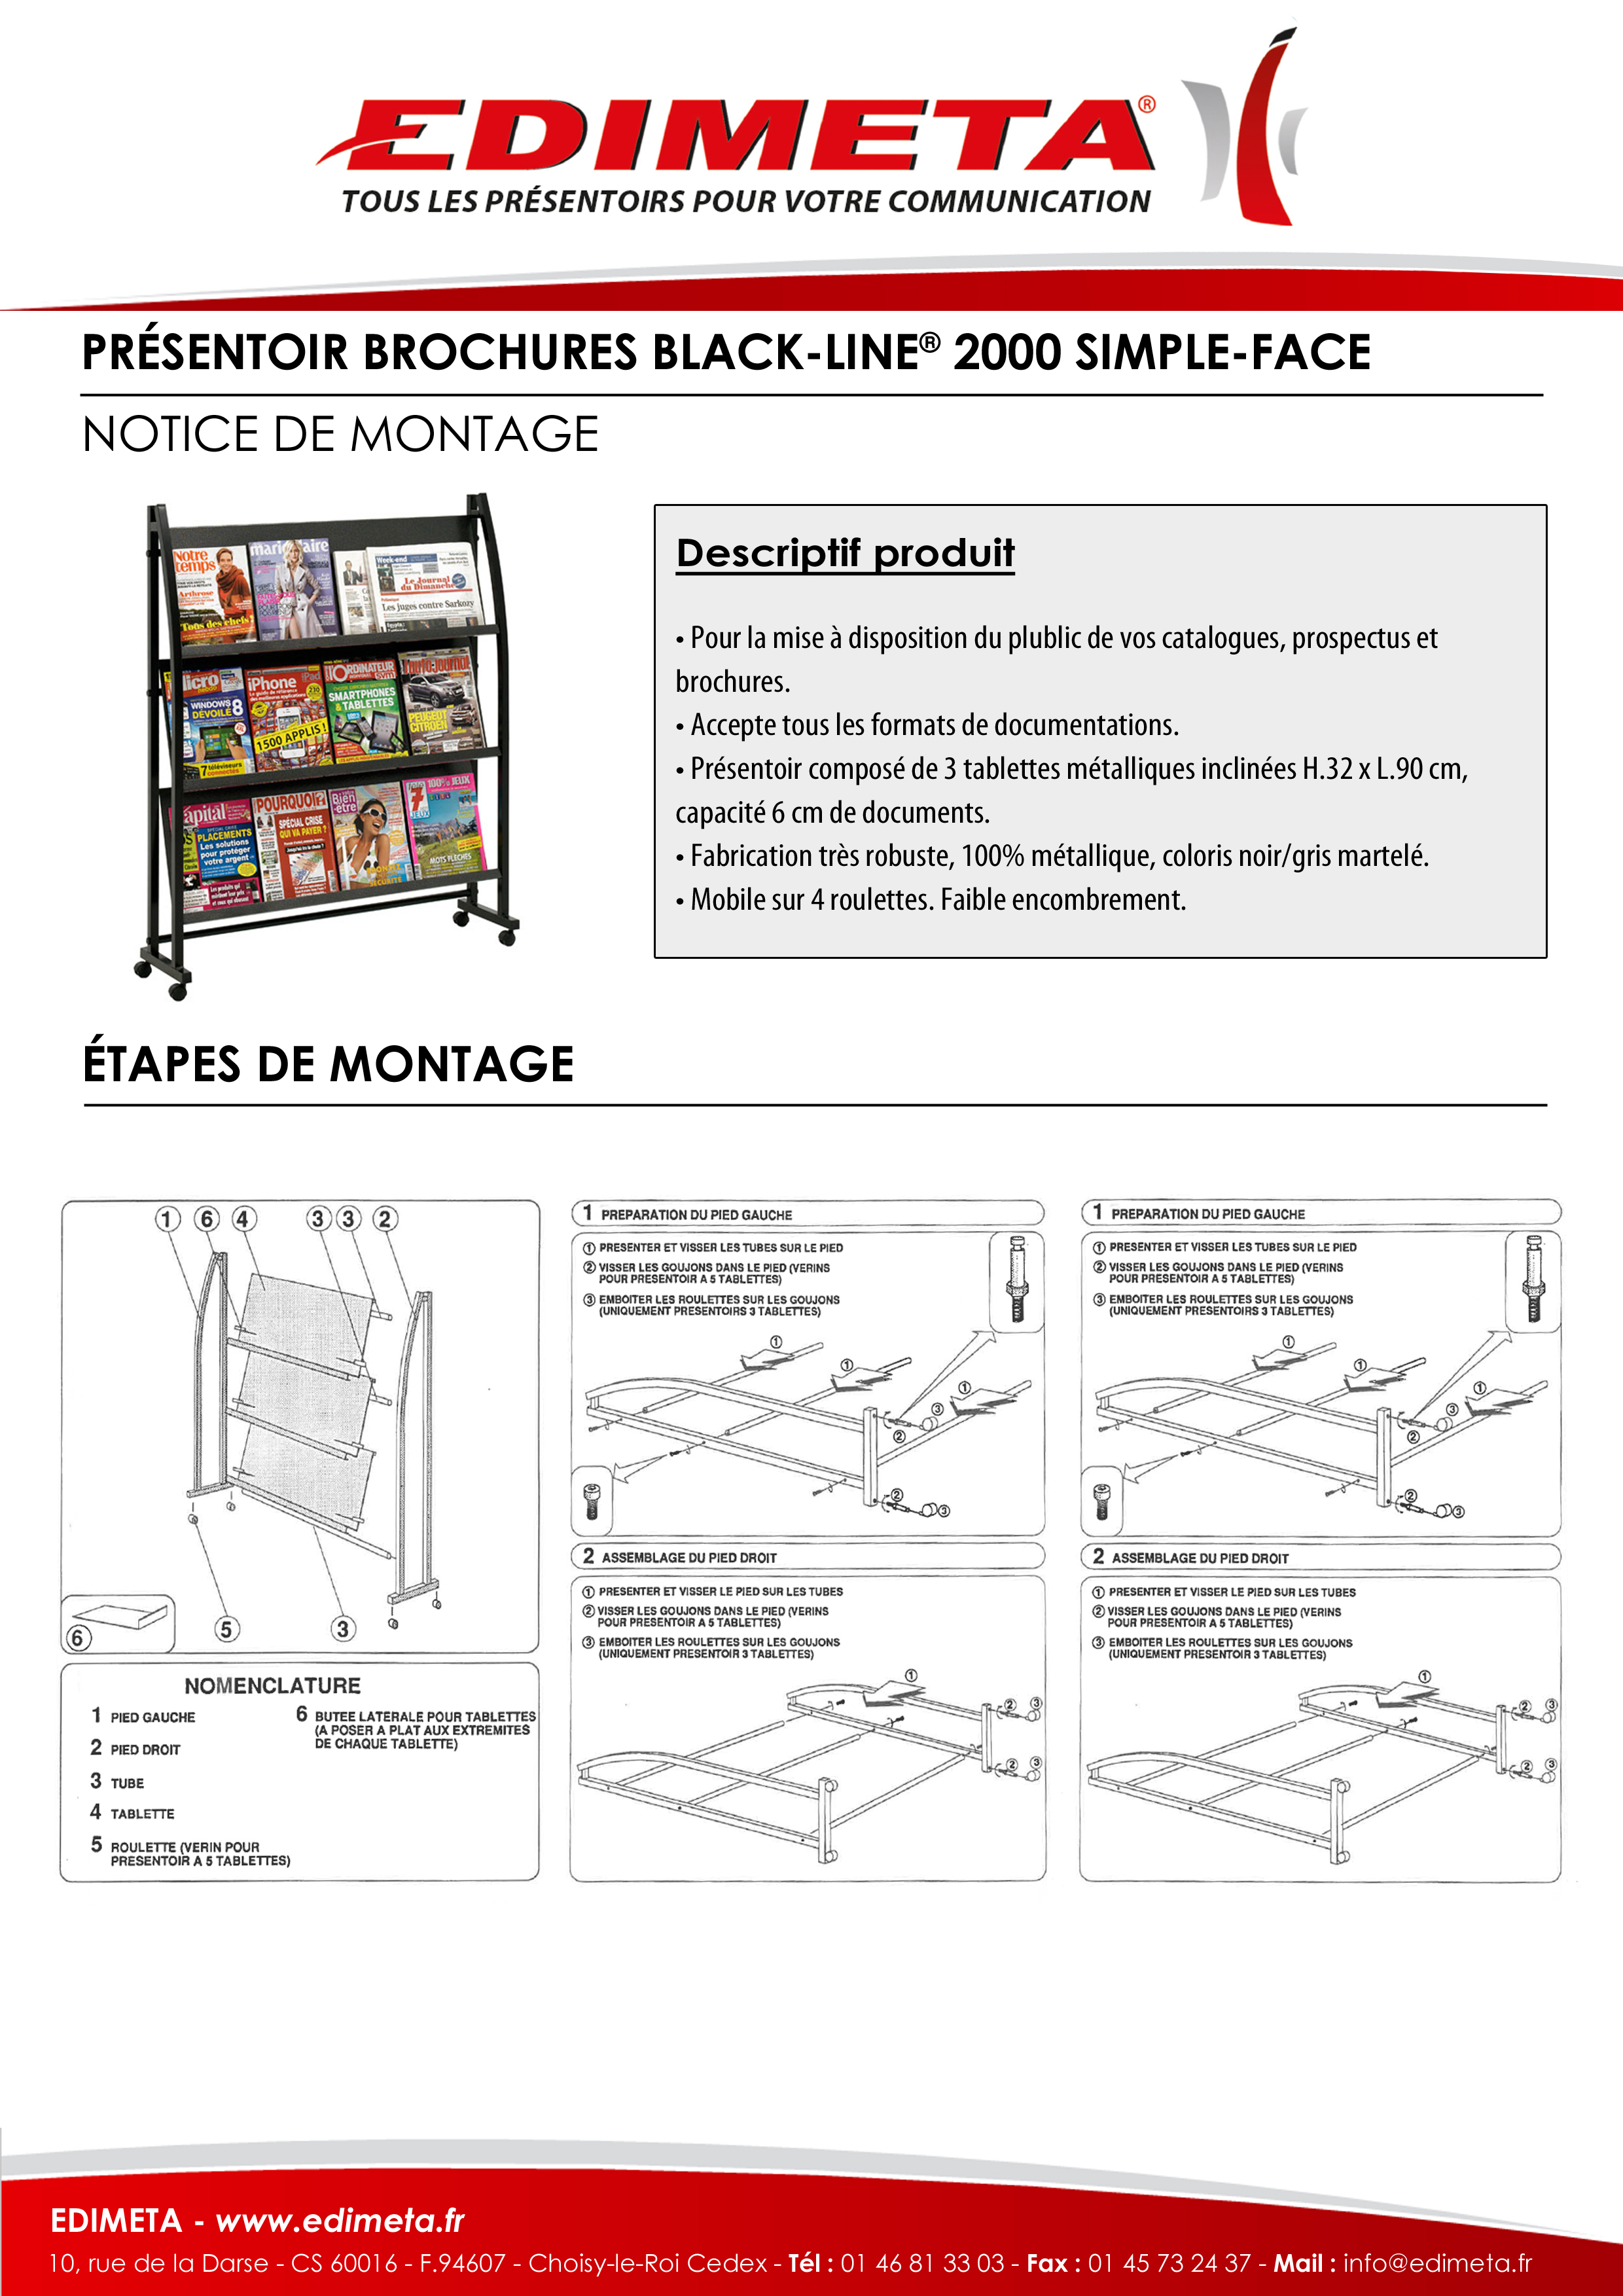 NOTICE DE MONTAGE : PRÉSENTOIR BROCHURES BLACK-LINE® 2000 SIMPLE-FACE